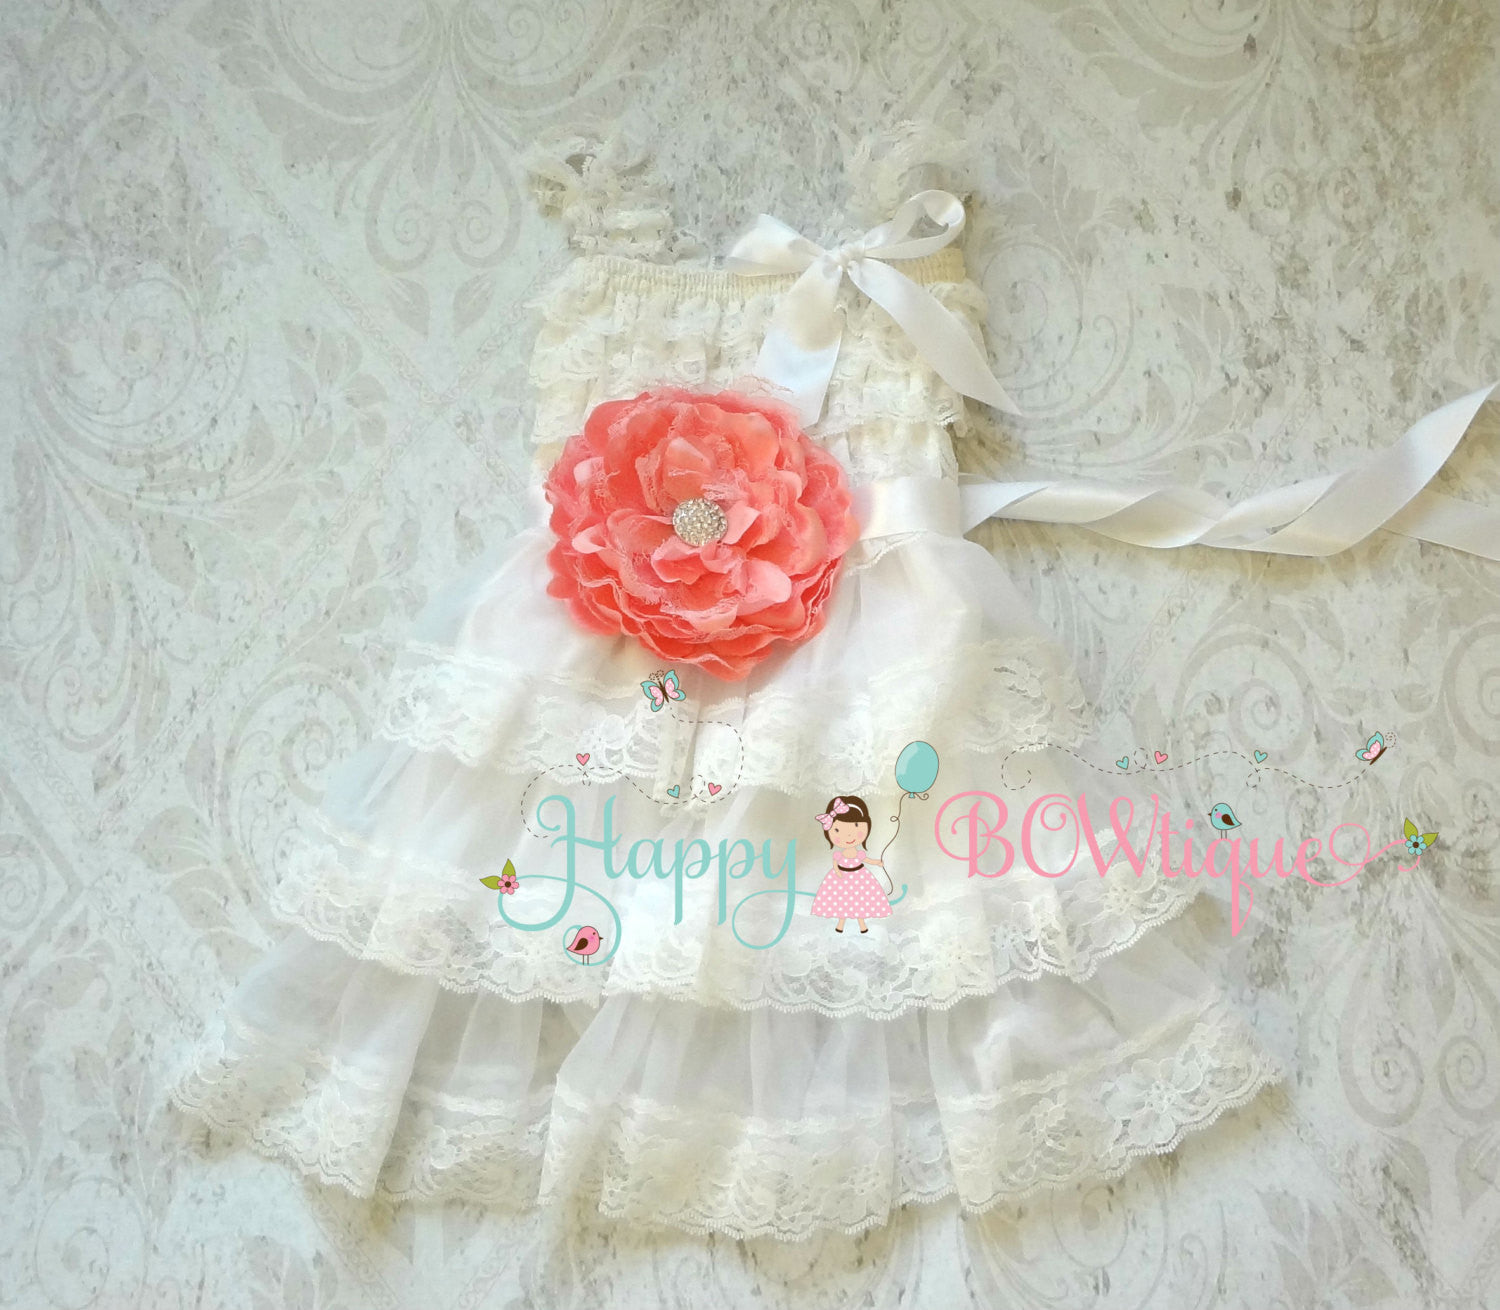 Coral White Peach Chiffon lace dress set / Girl's White Lace Dress - Happy BOWtique - children's clothing, Baby Girl clothing